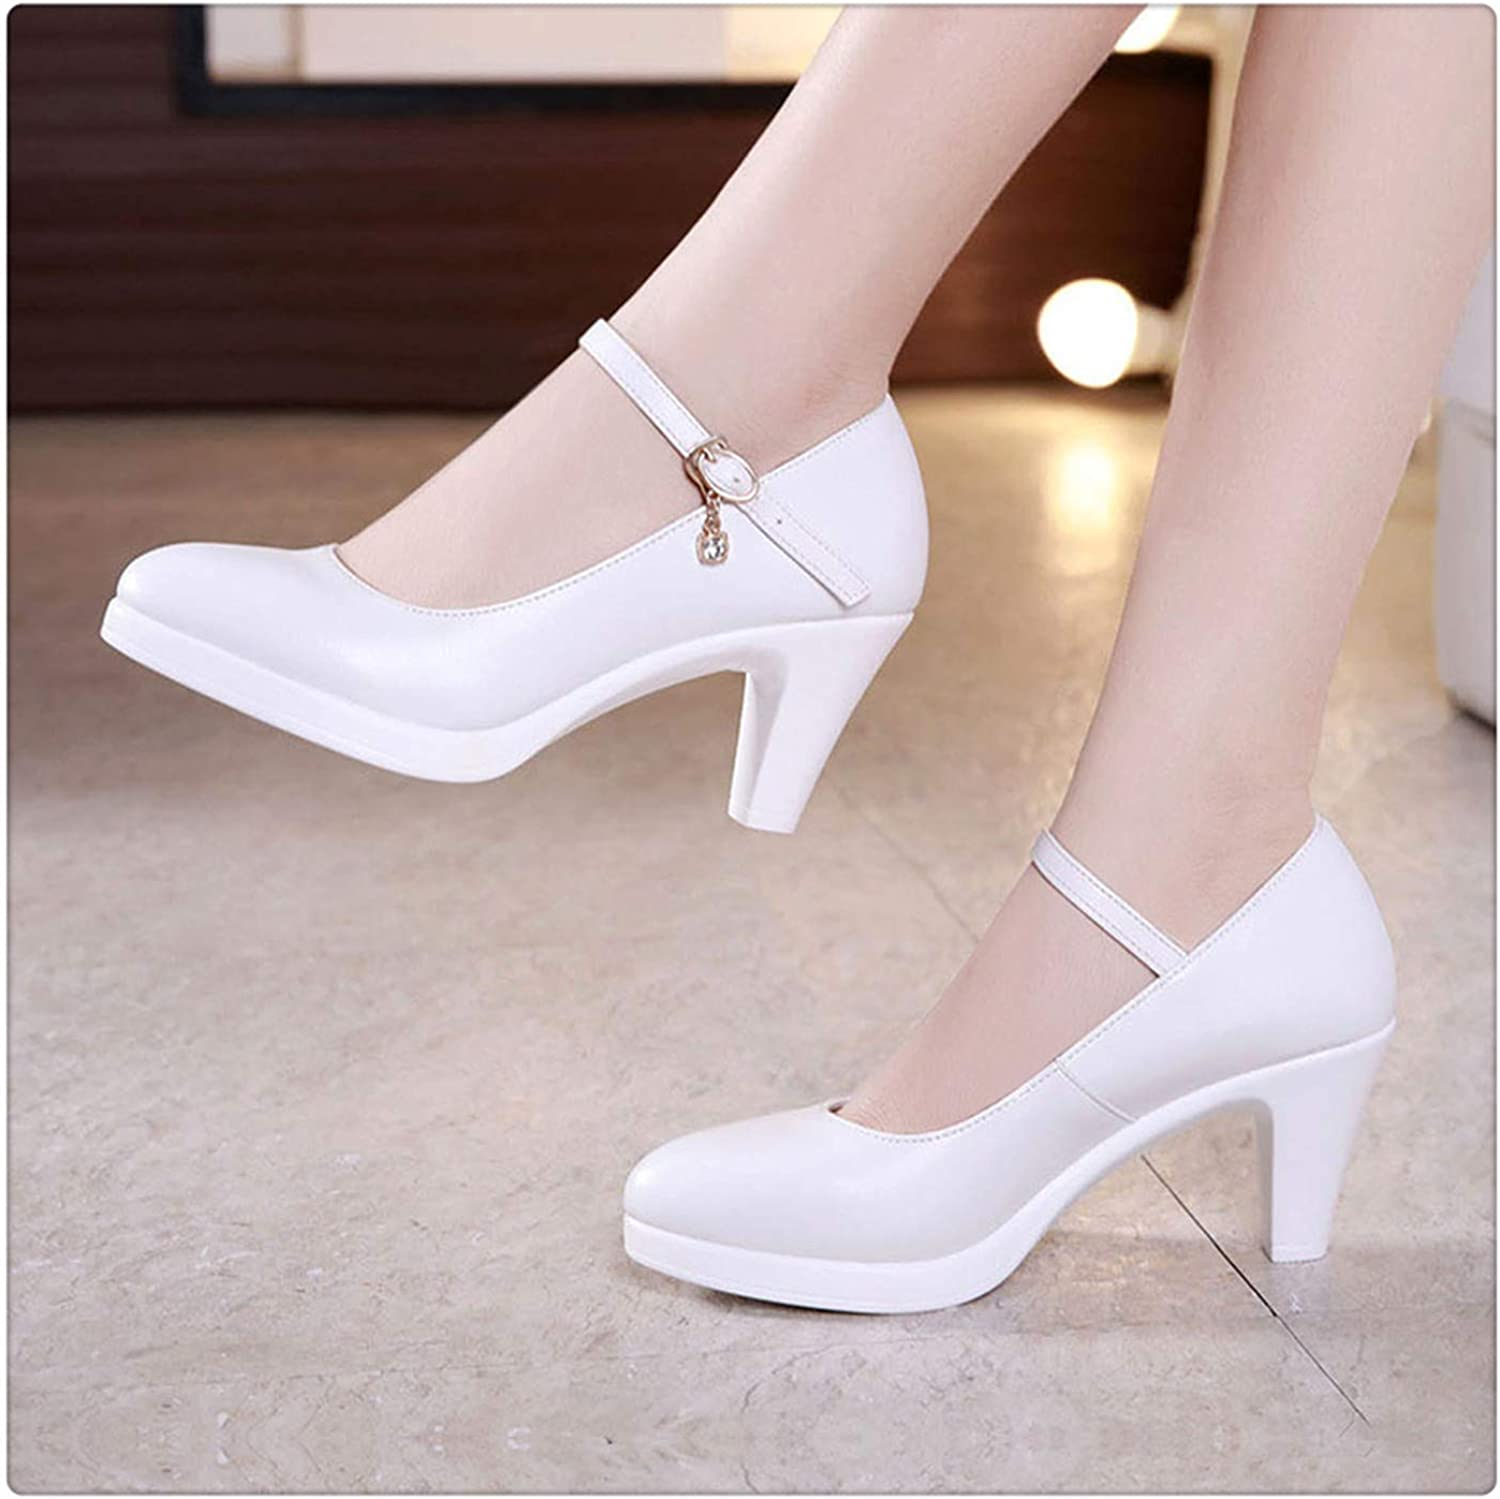 GLOPY& Pointed Toe Women Genuine Leather shoes for Wedding Women Platform Pumps with High Heels shoes for Office Work shoes White6CM 3.5